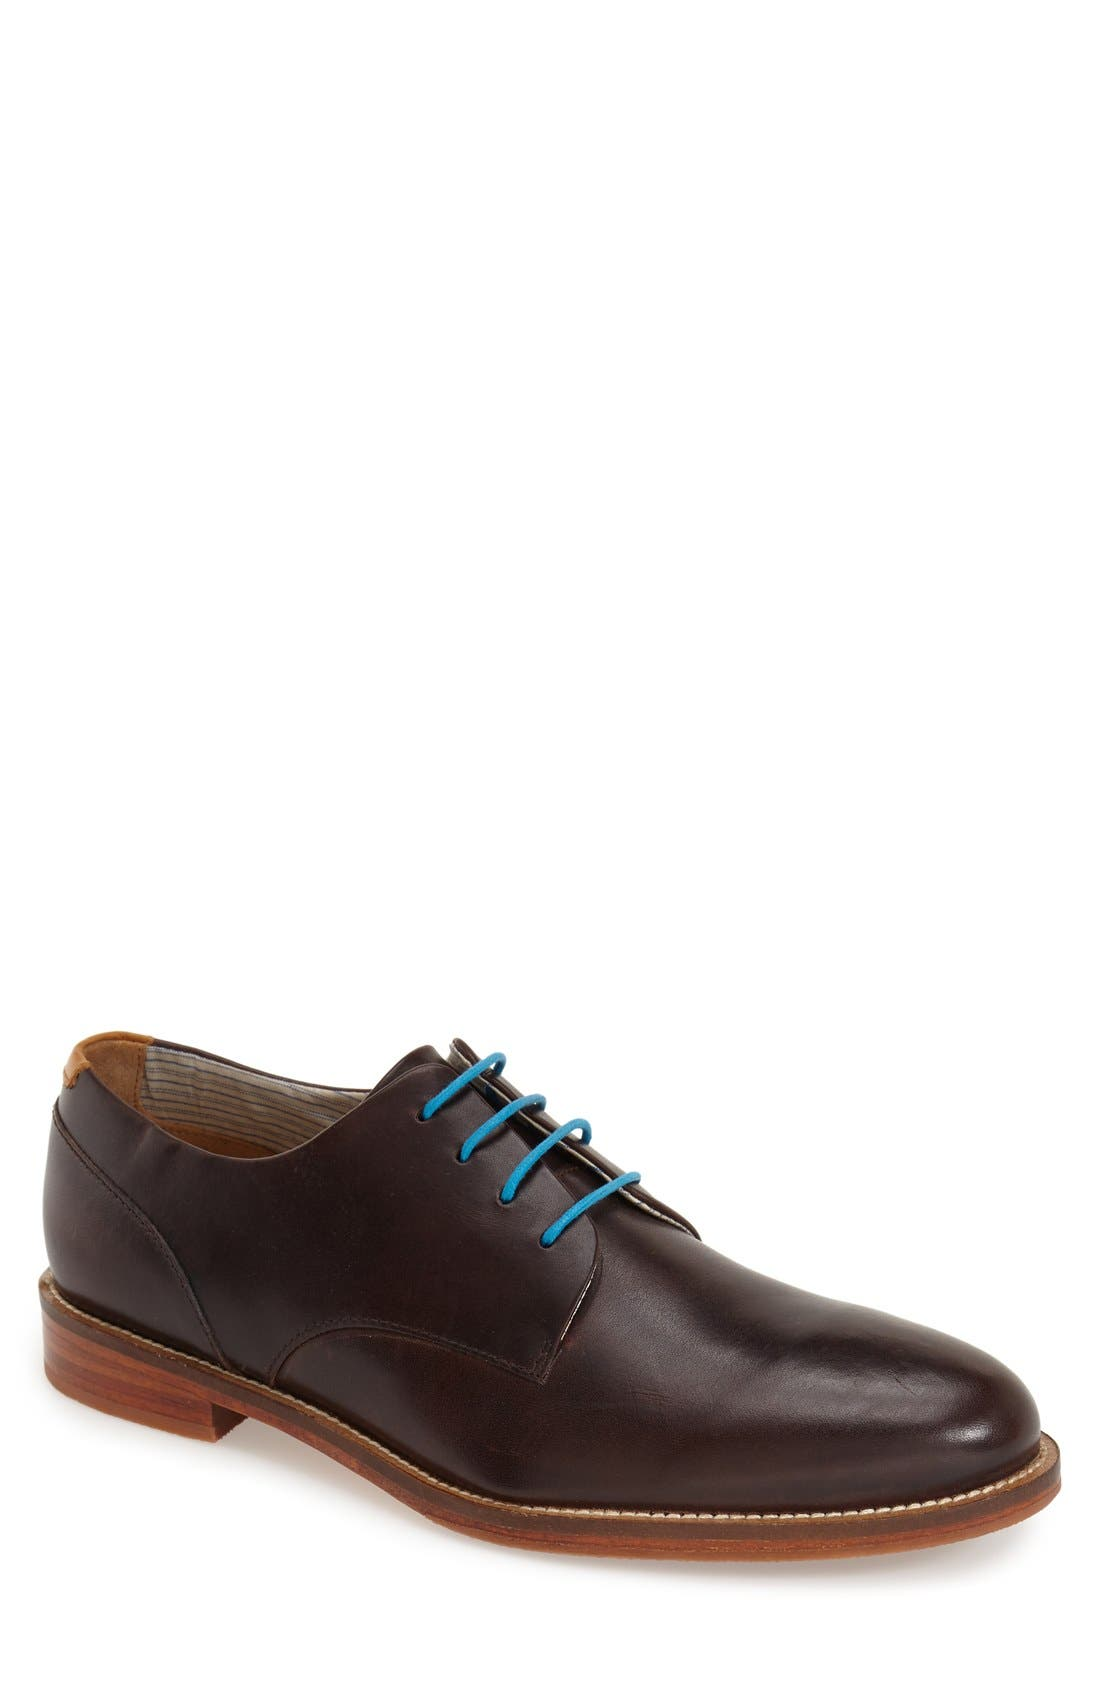 'William Plus' Plain Toe Derby,                             Main thumbnail 1, color,                             Dark Brown